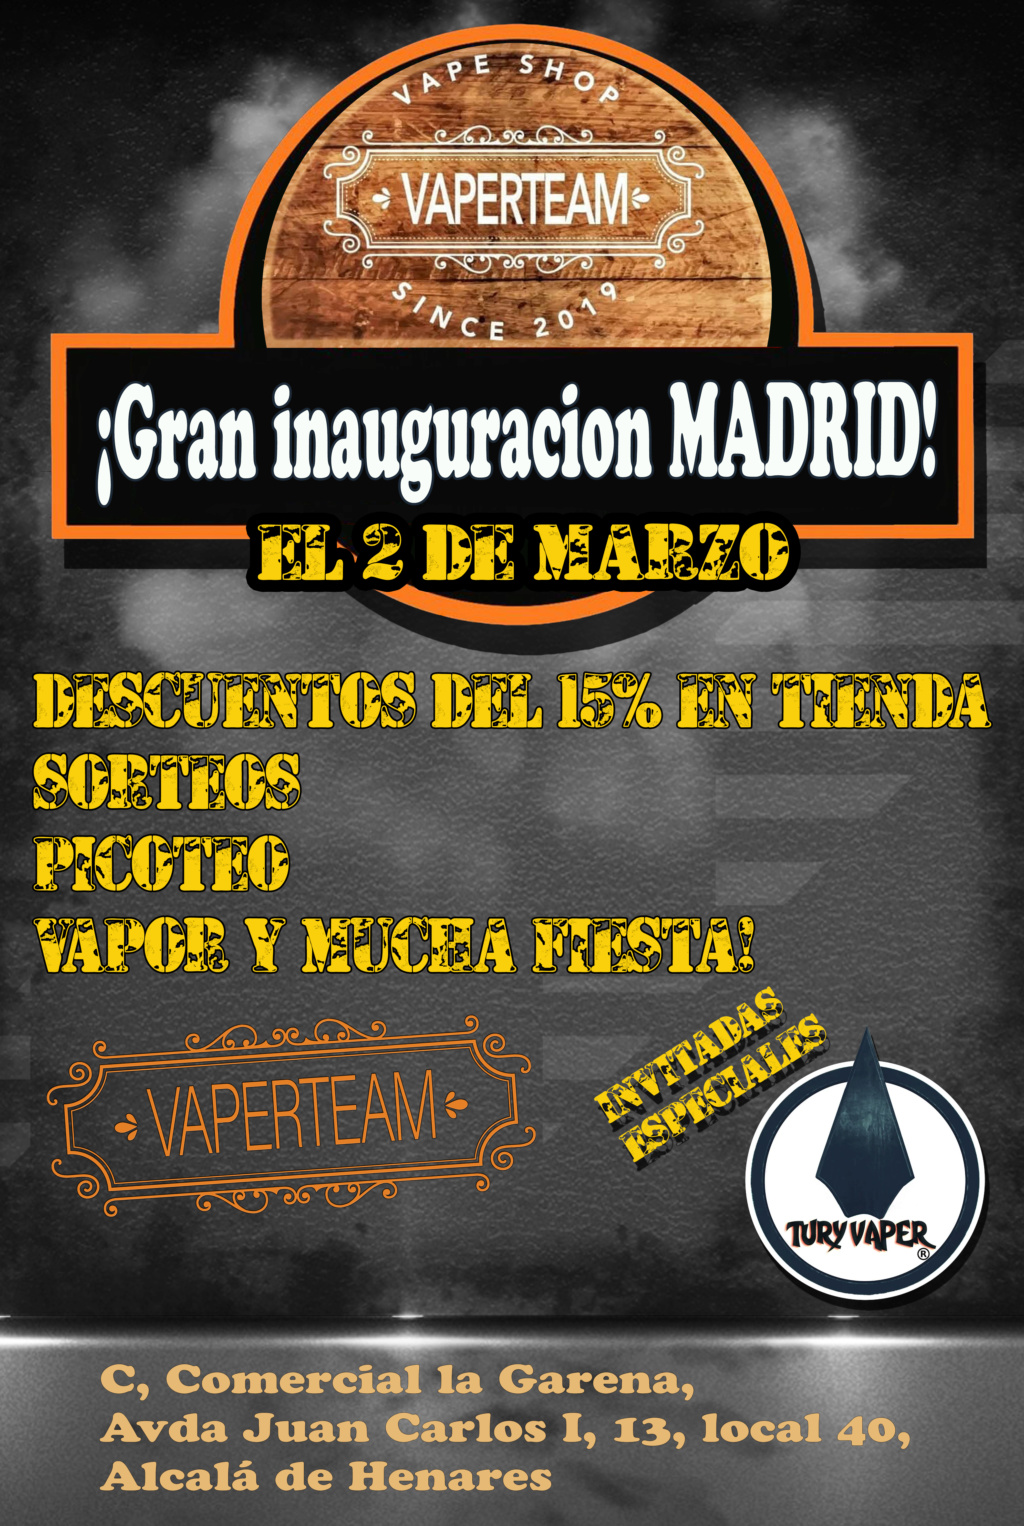 GRAN INAUGURACIÓN MADRID - No faltaremos!! Cartel10